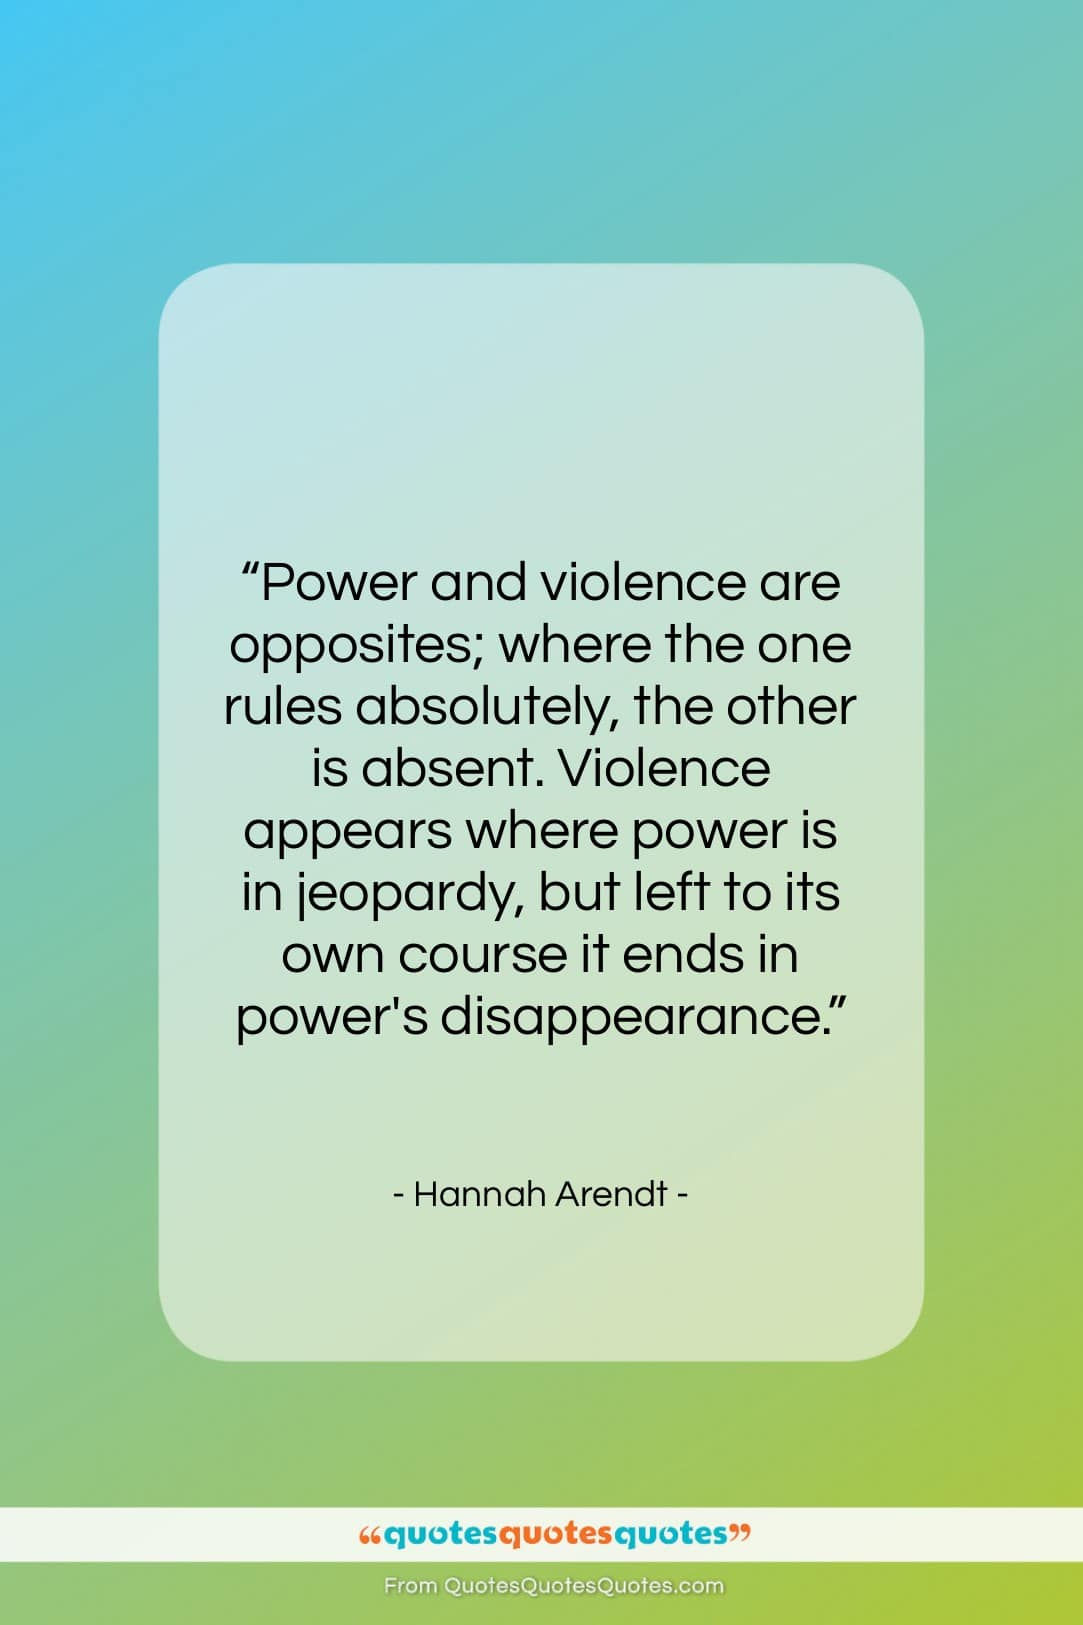 """Hannah Arendt quote: """"Power and violence are opposites; where the…""""- at QuotesQuotesQuotes.com"""